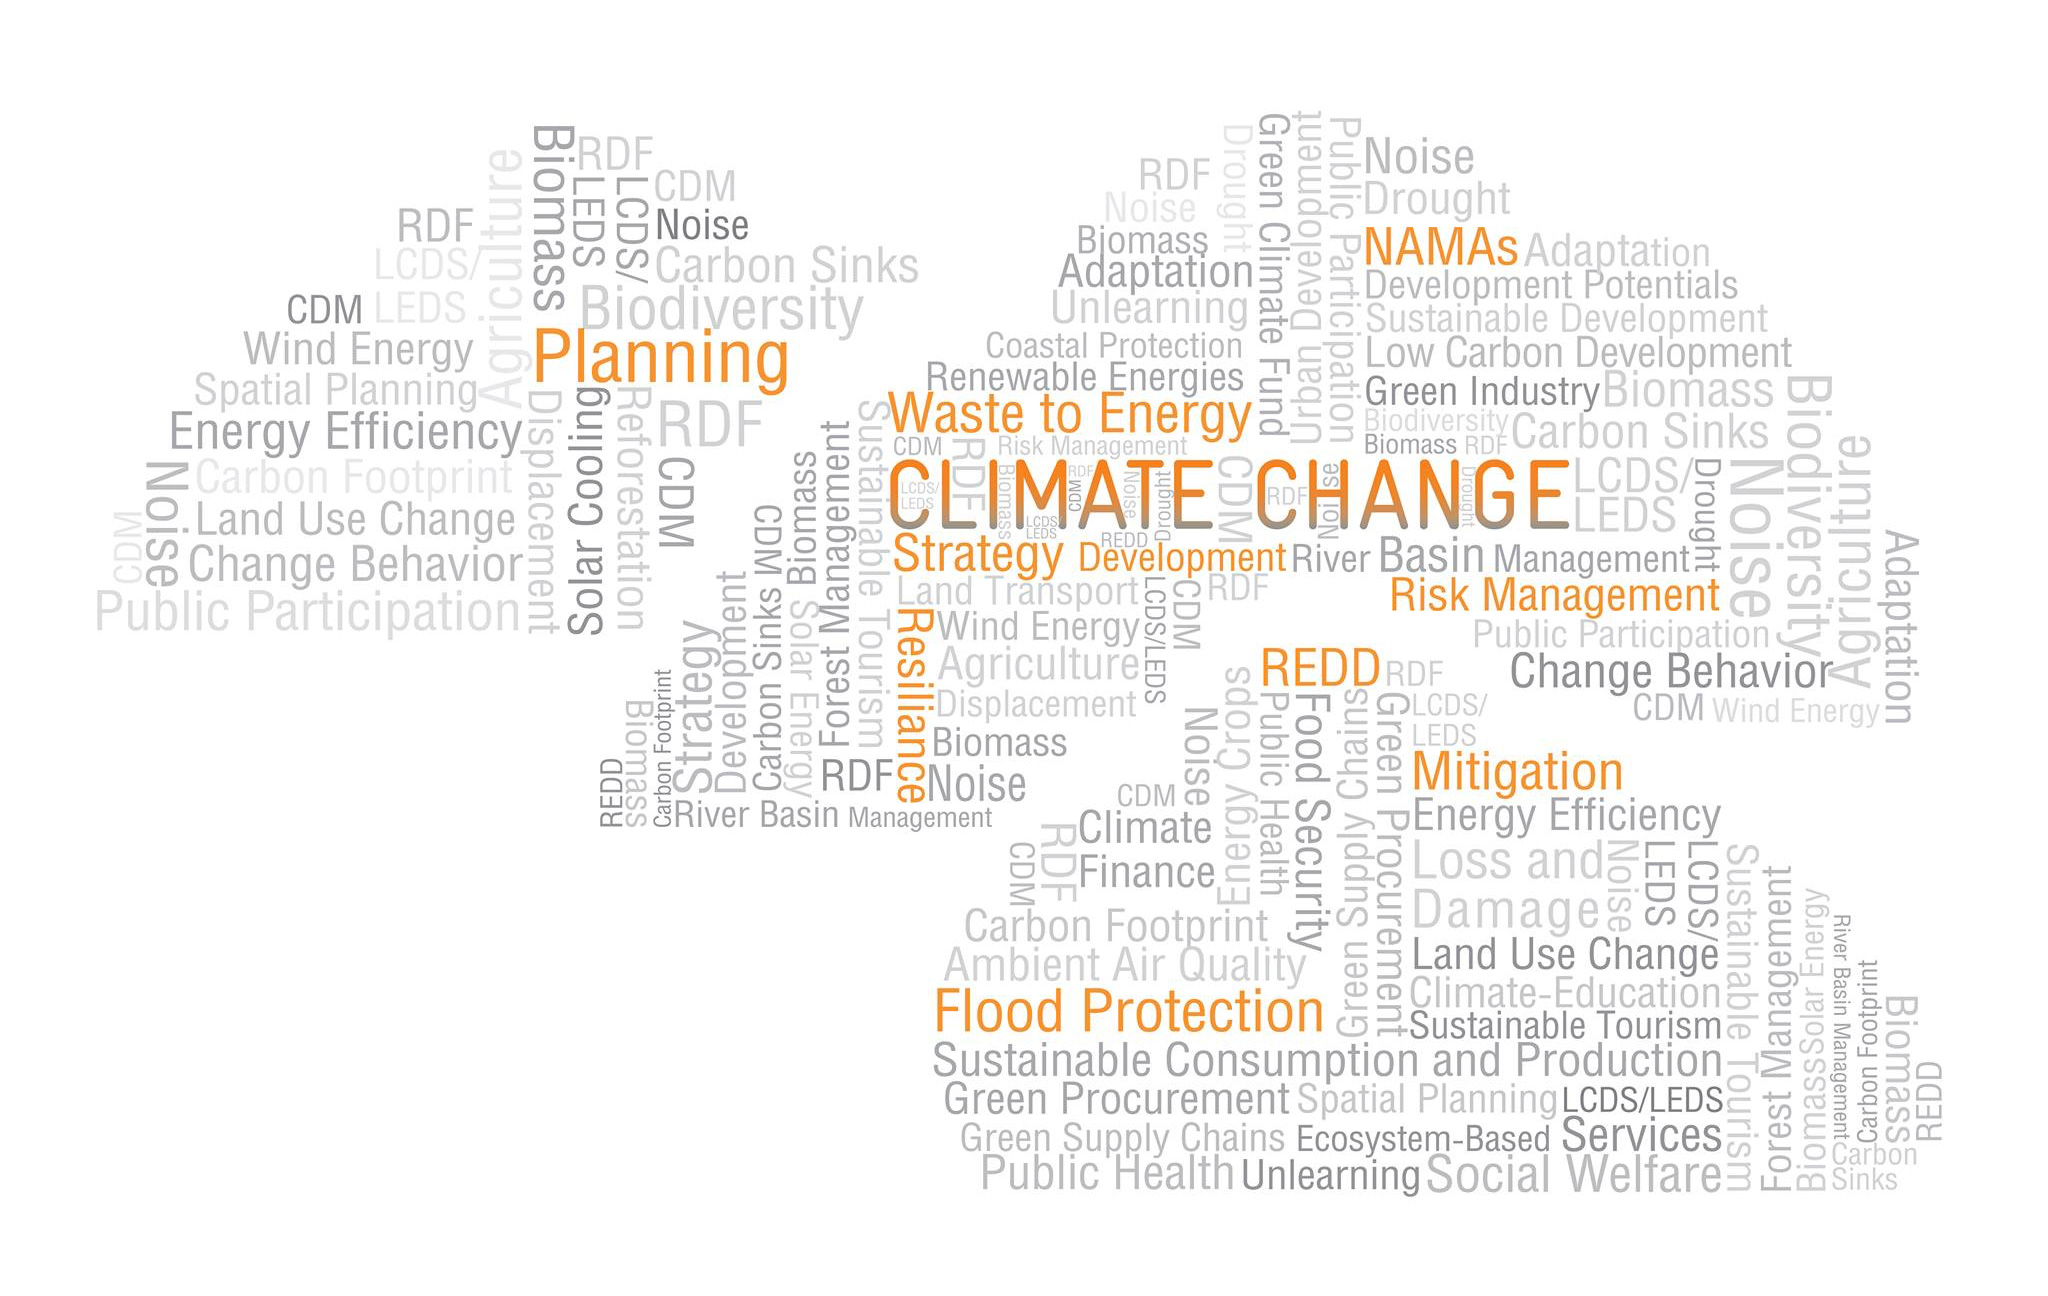 Risk-based National Adaptation Plan